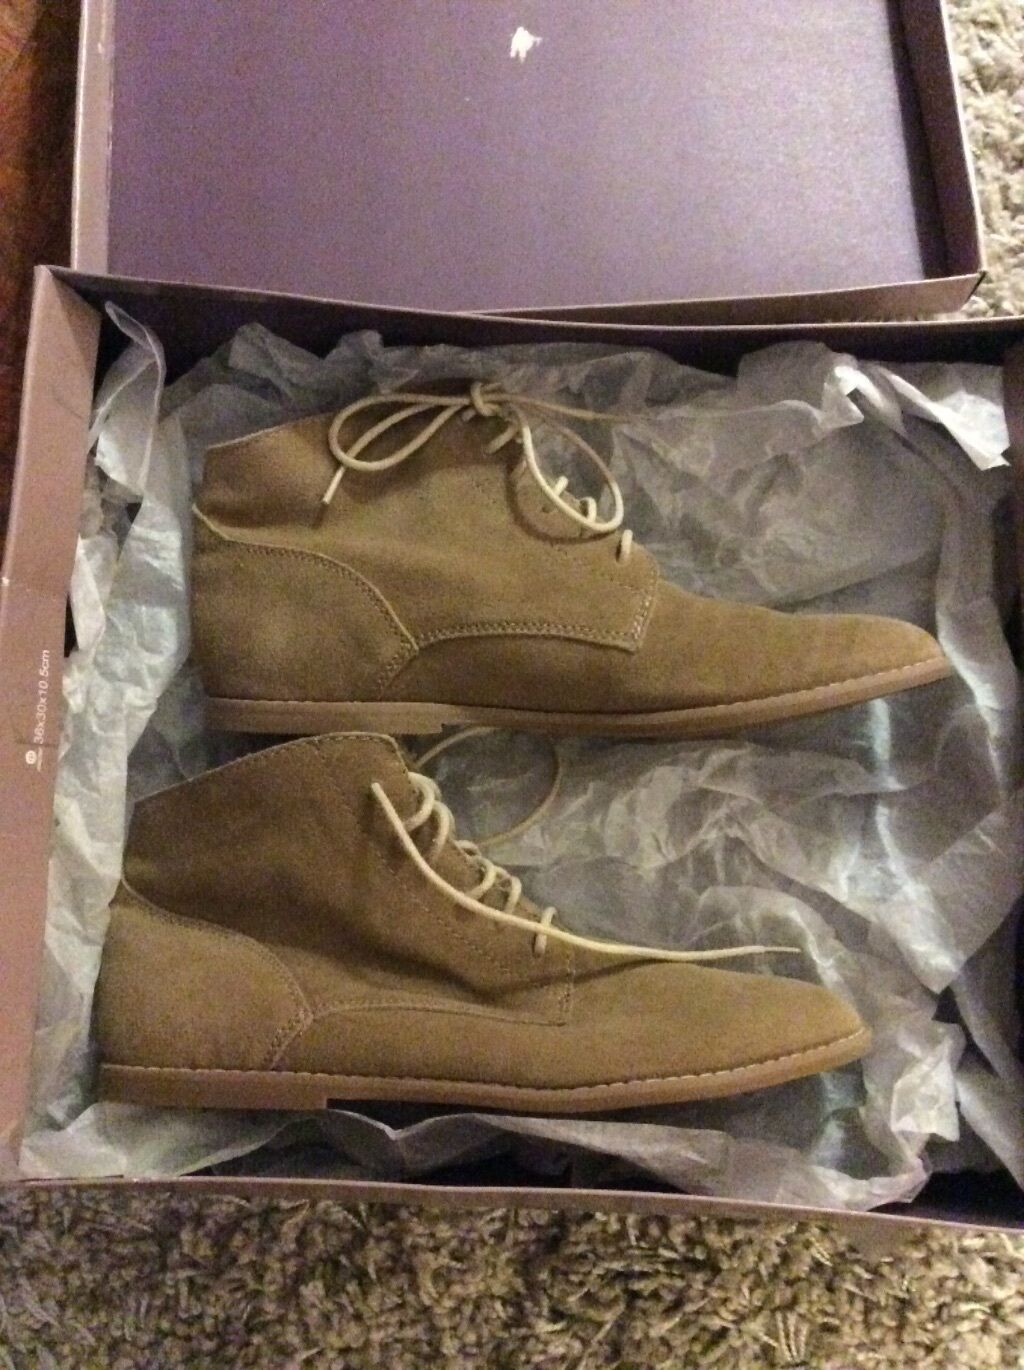 Women's booties size 9 URBAN OUTFITTERS NEW!